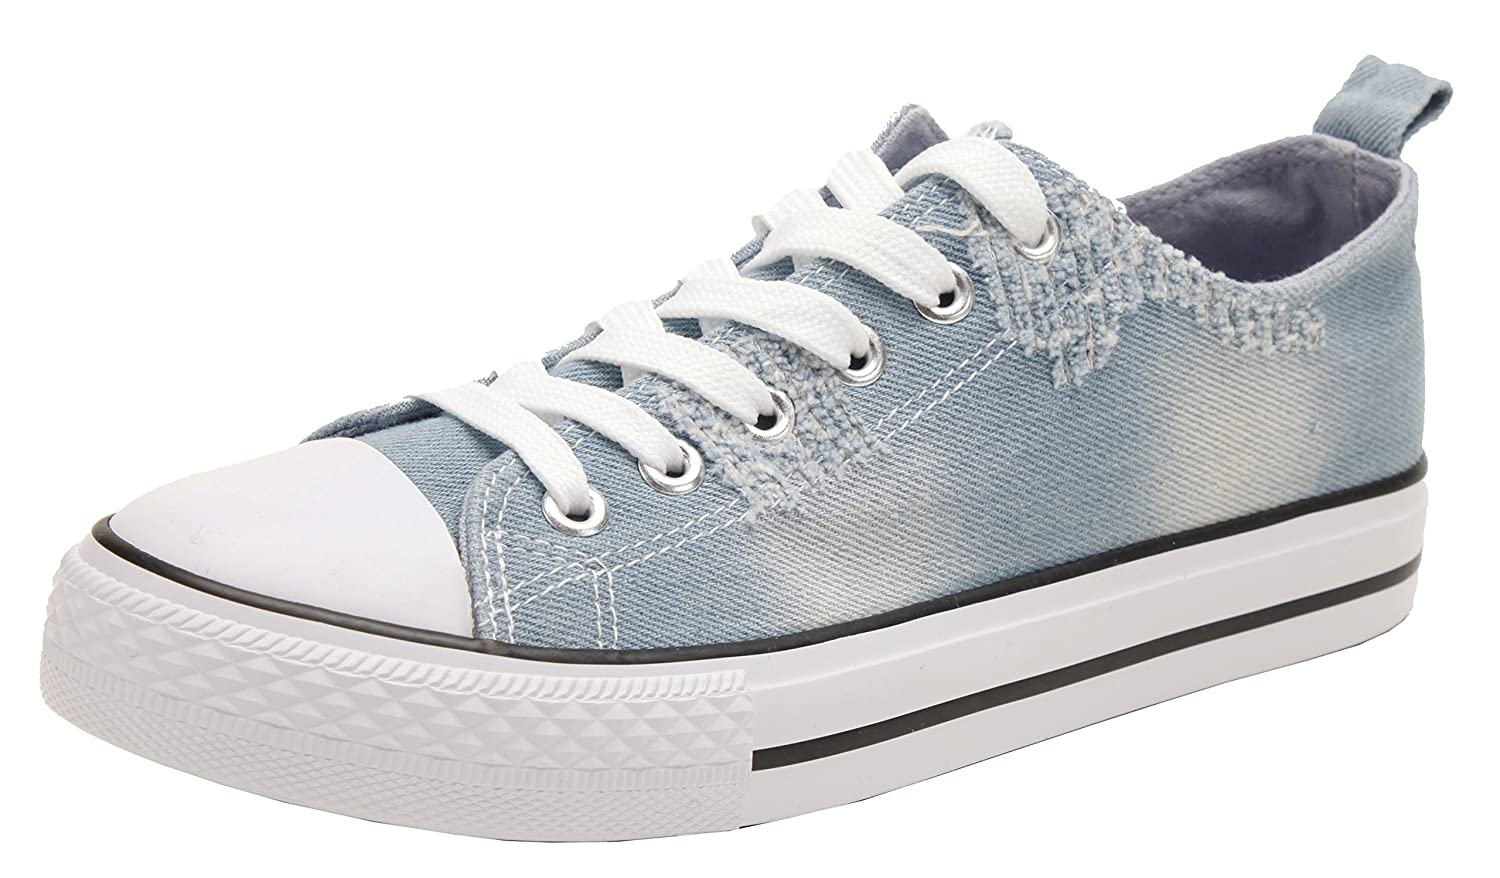 PEPSTEP Canvas Sneakers for Women/Light Blue/Navy/Black Casual Shoes Low Top Lace up Fashion Sneakers B073X49BF8 6.5 B(M) US|Light Blue